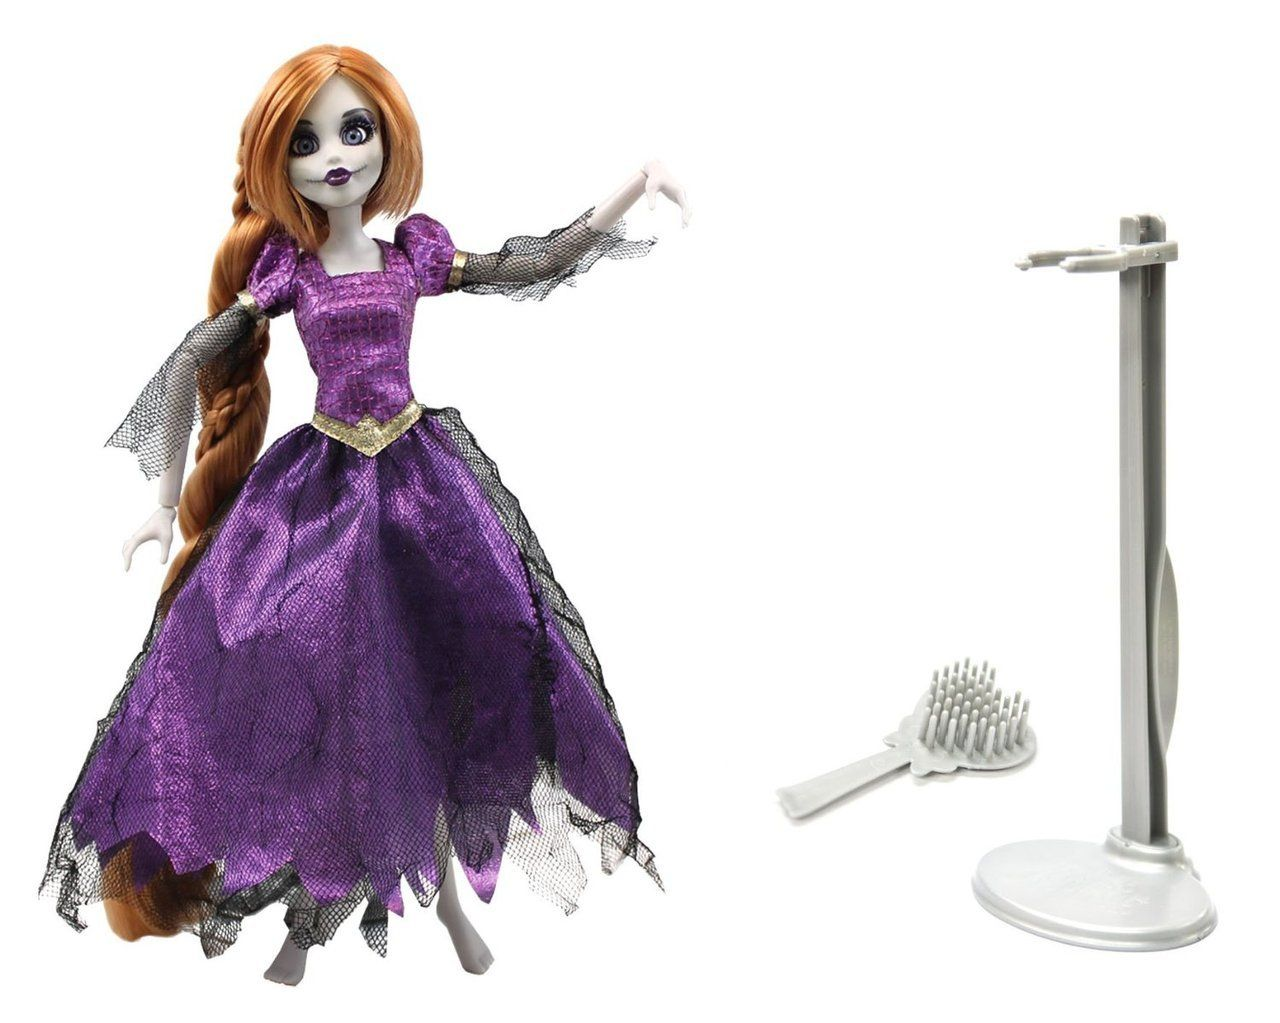 Bentzen Toys - Once Upon a Zombie Rapunzel Doll, £16.99 (http://www.bentzentoys.co.uk/once-upon-a-zombie-rapunzel-doll/)